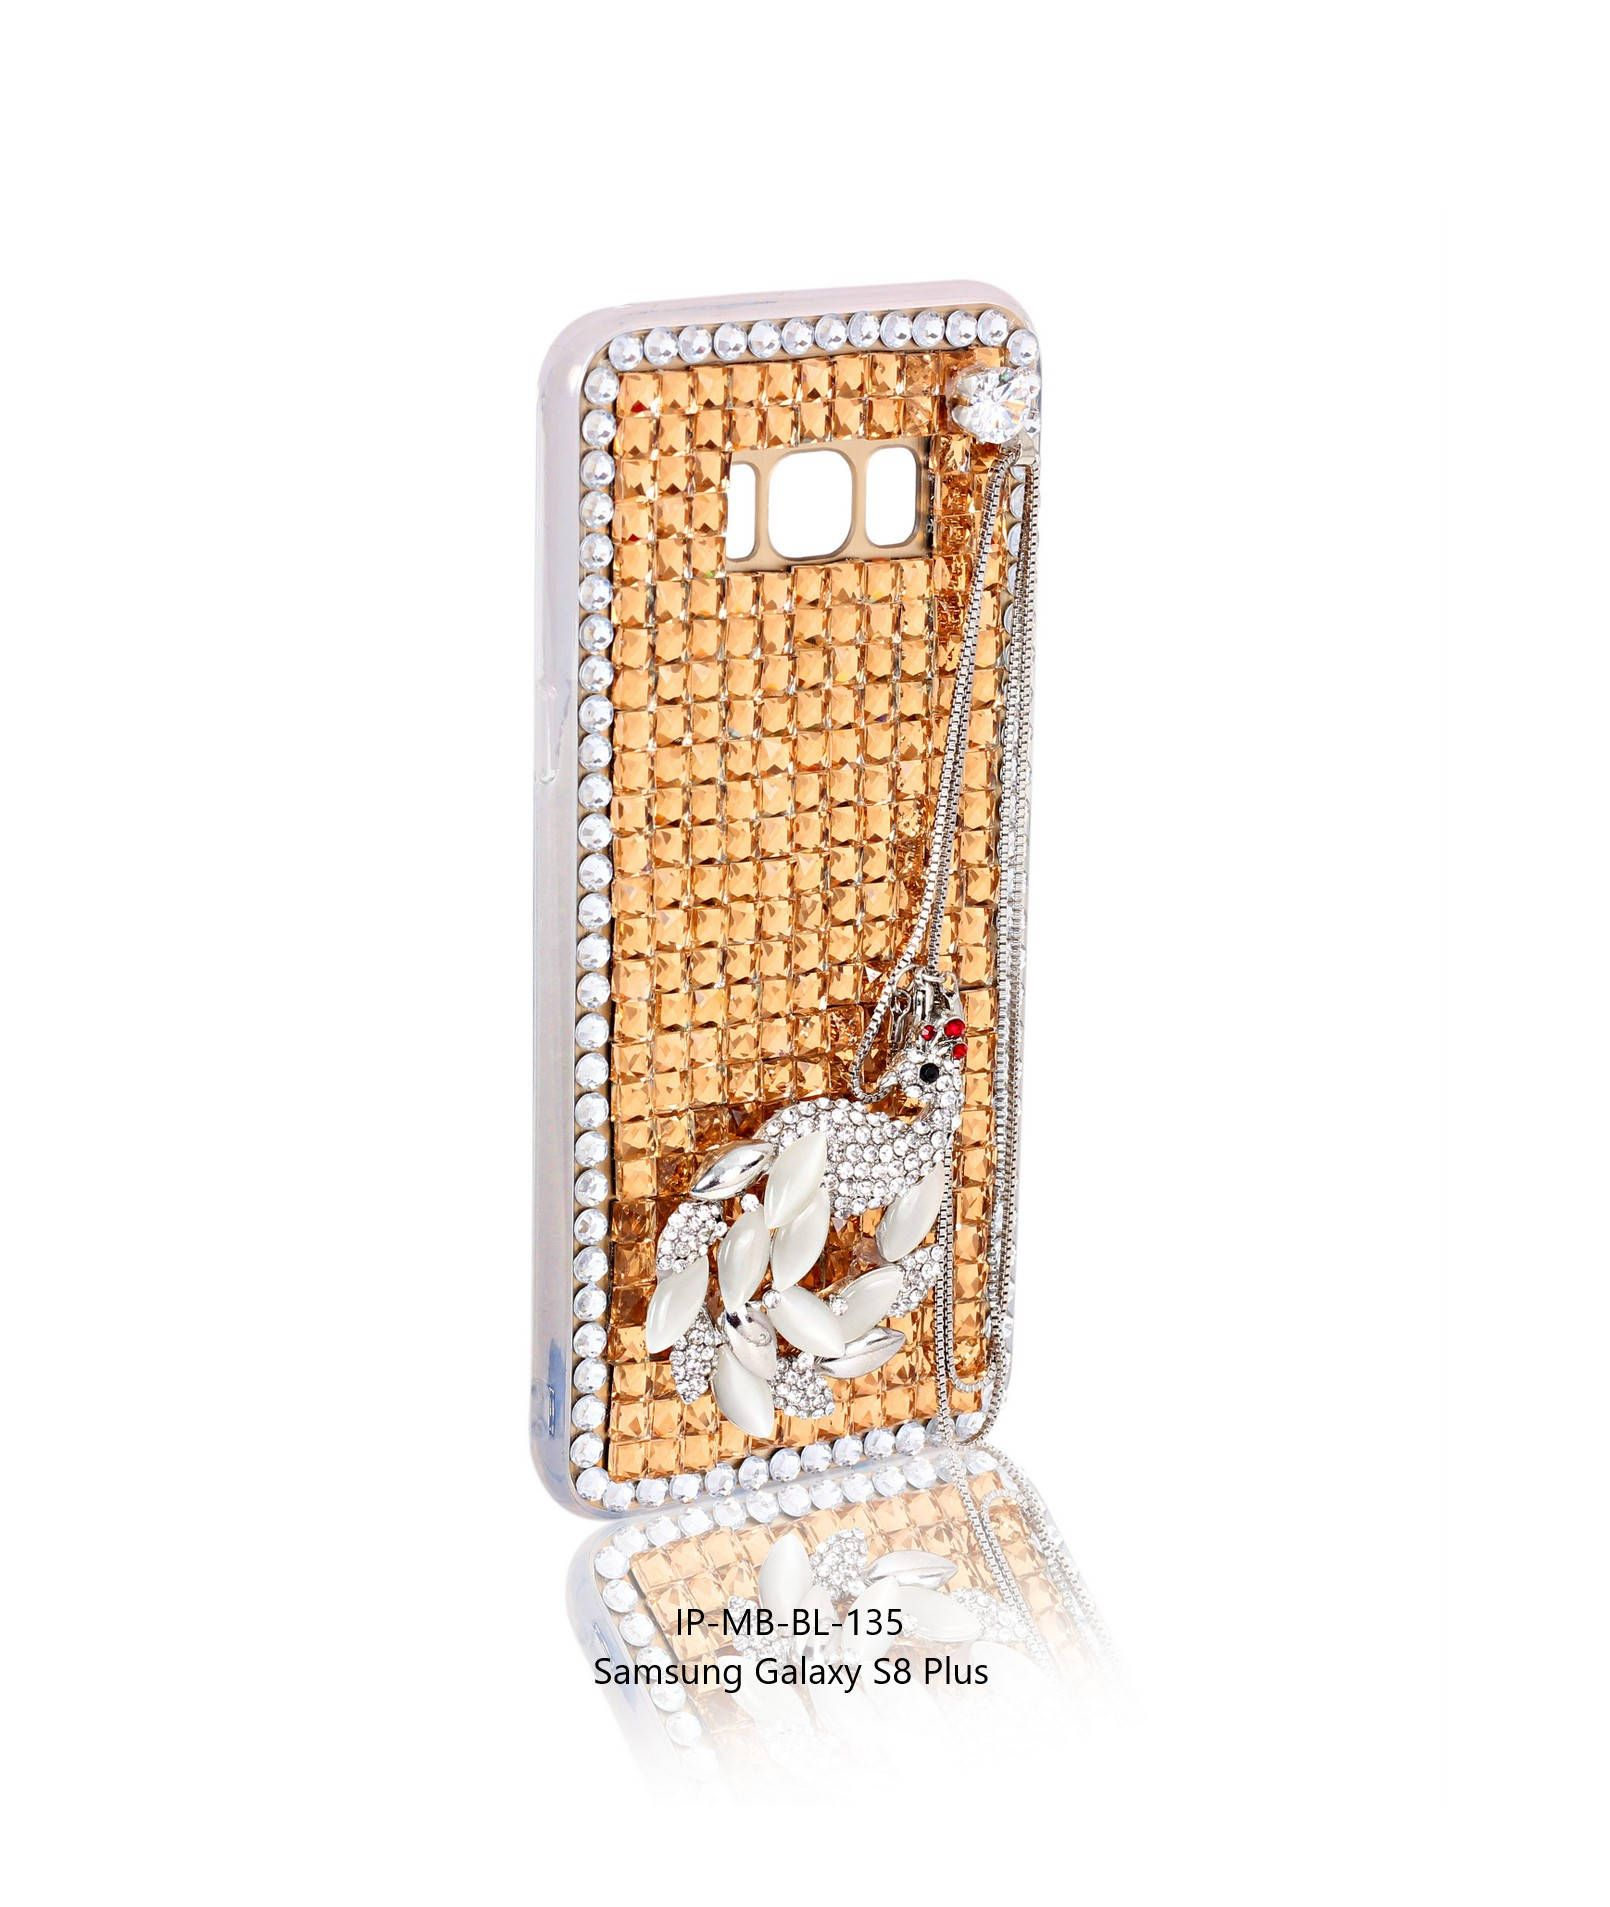 ec896c92c Indian Petals Diamond Studded Pearl Peacock with Chain Design Handmade  Mobile Bling Back Cover Case Stylish Party Cover for Samsung Galaxy S8 Plus  Gift